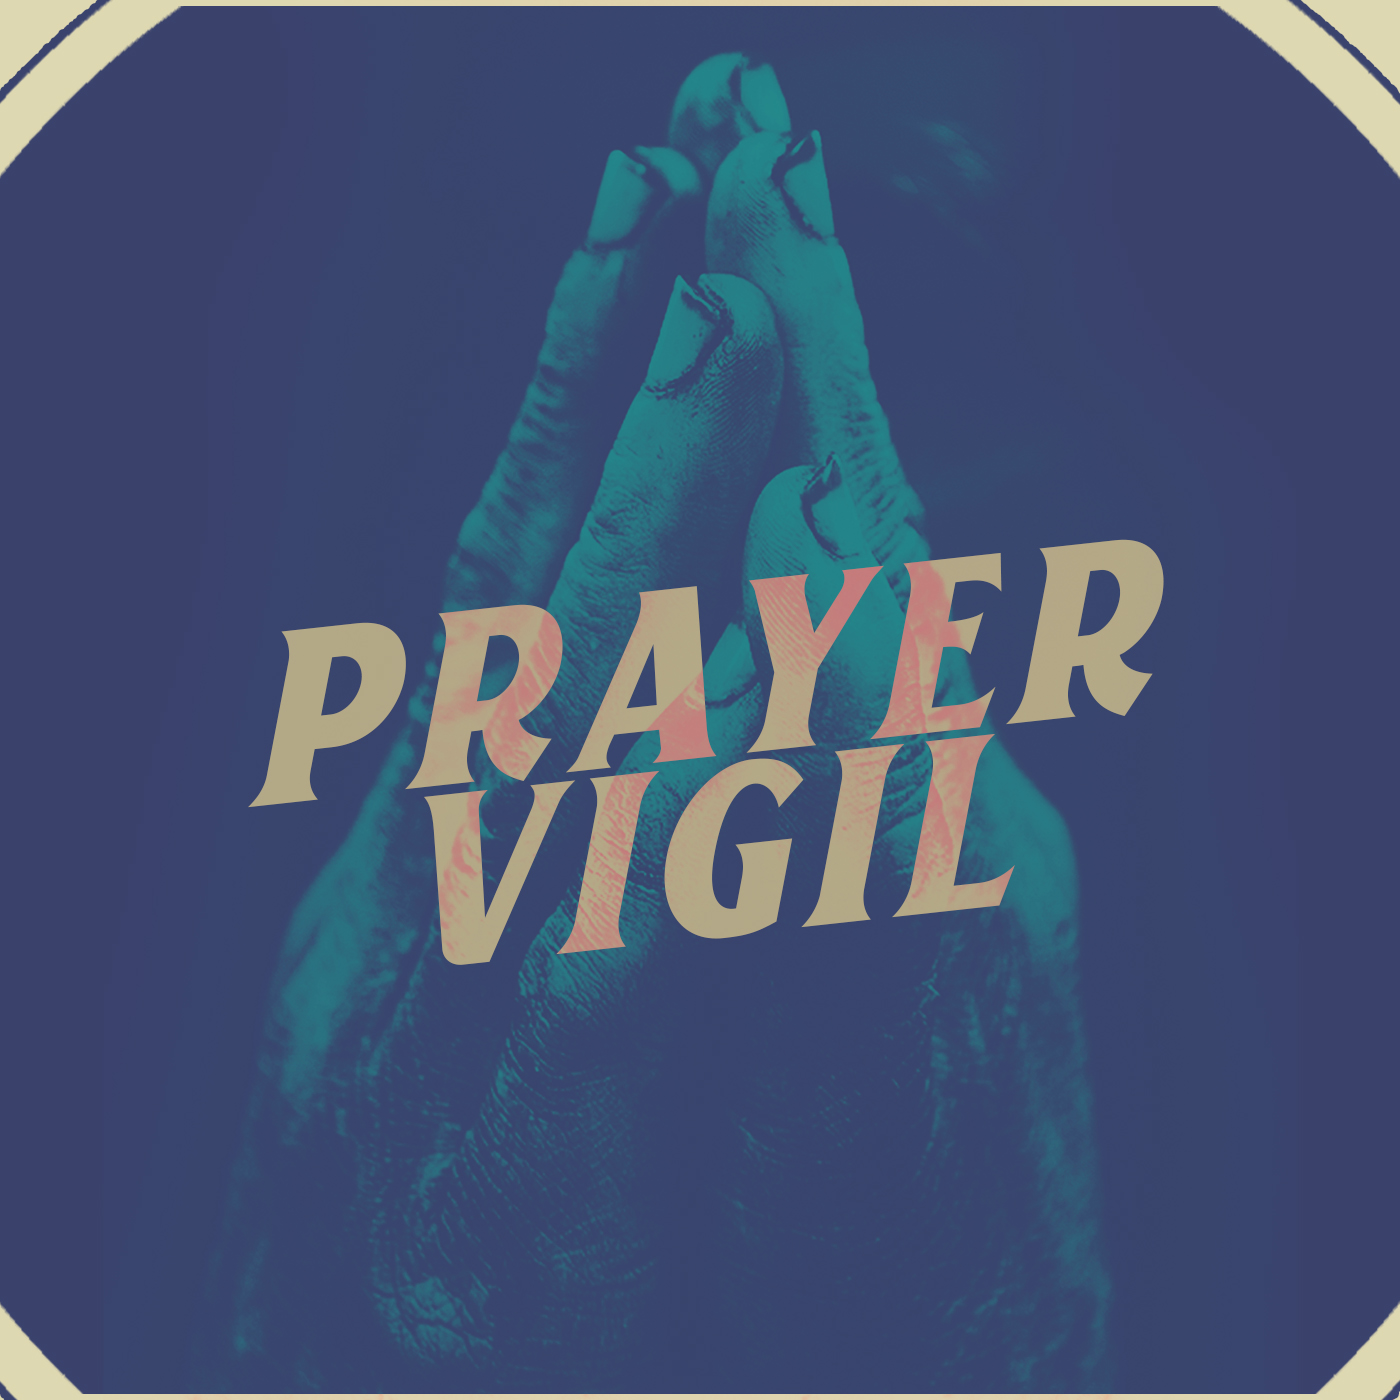 Prayer Vigil Square Image.jpg